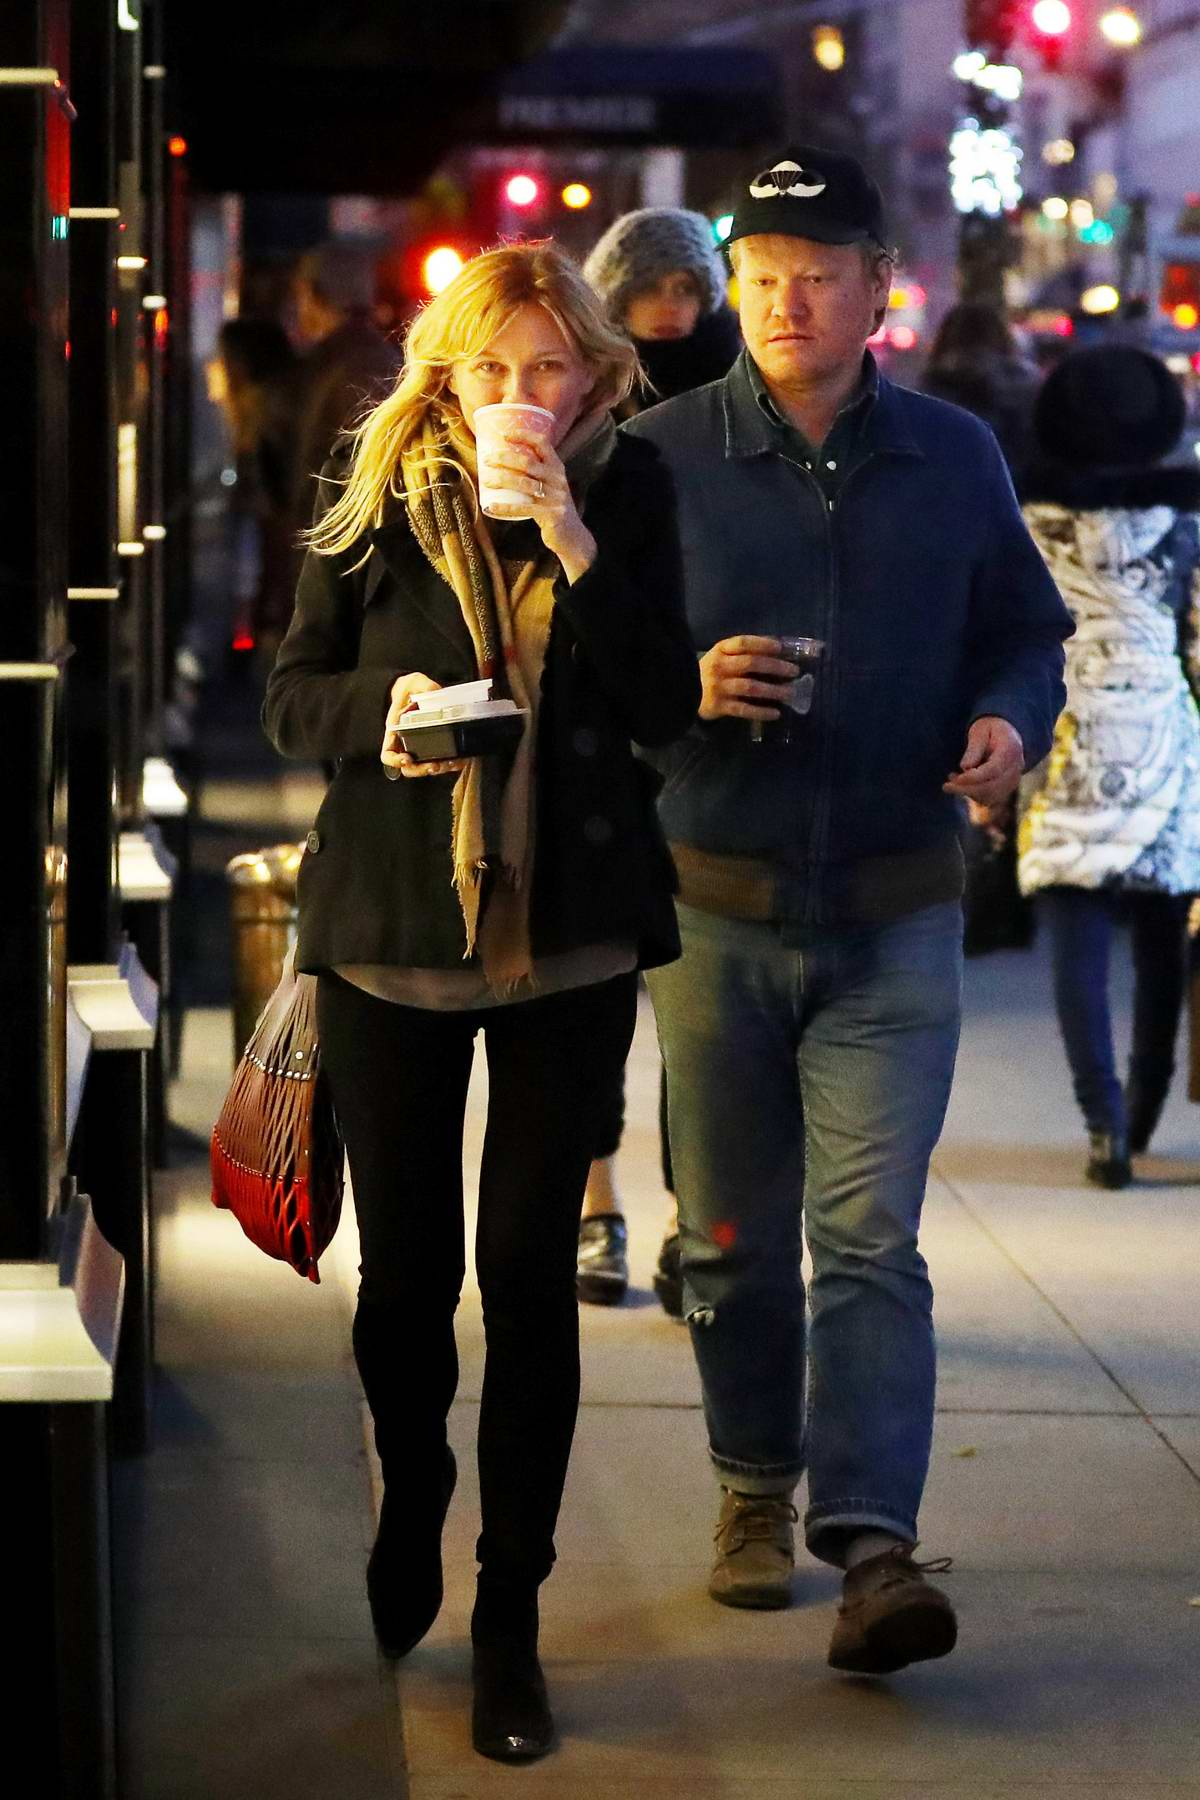 Kirsten Dunst and fiance Jesse Plemons enjoy a romantic nighttime stroll in New York City